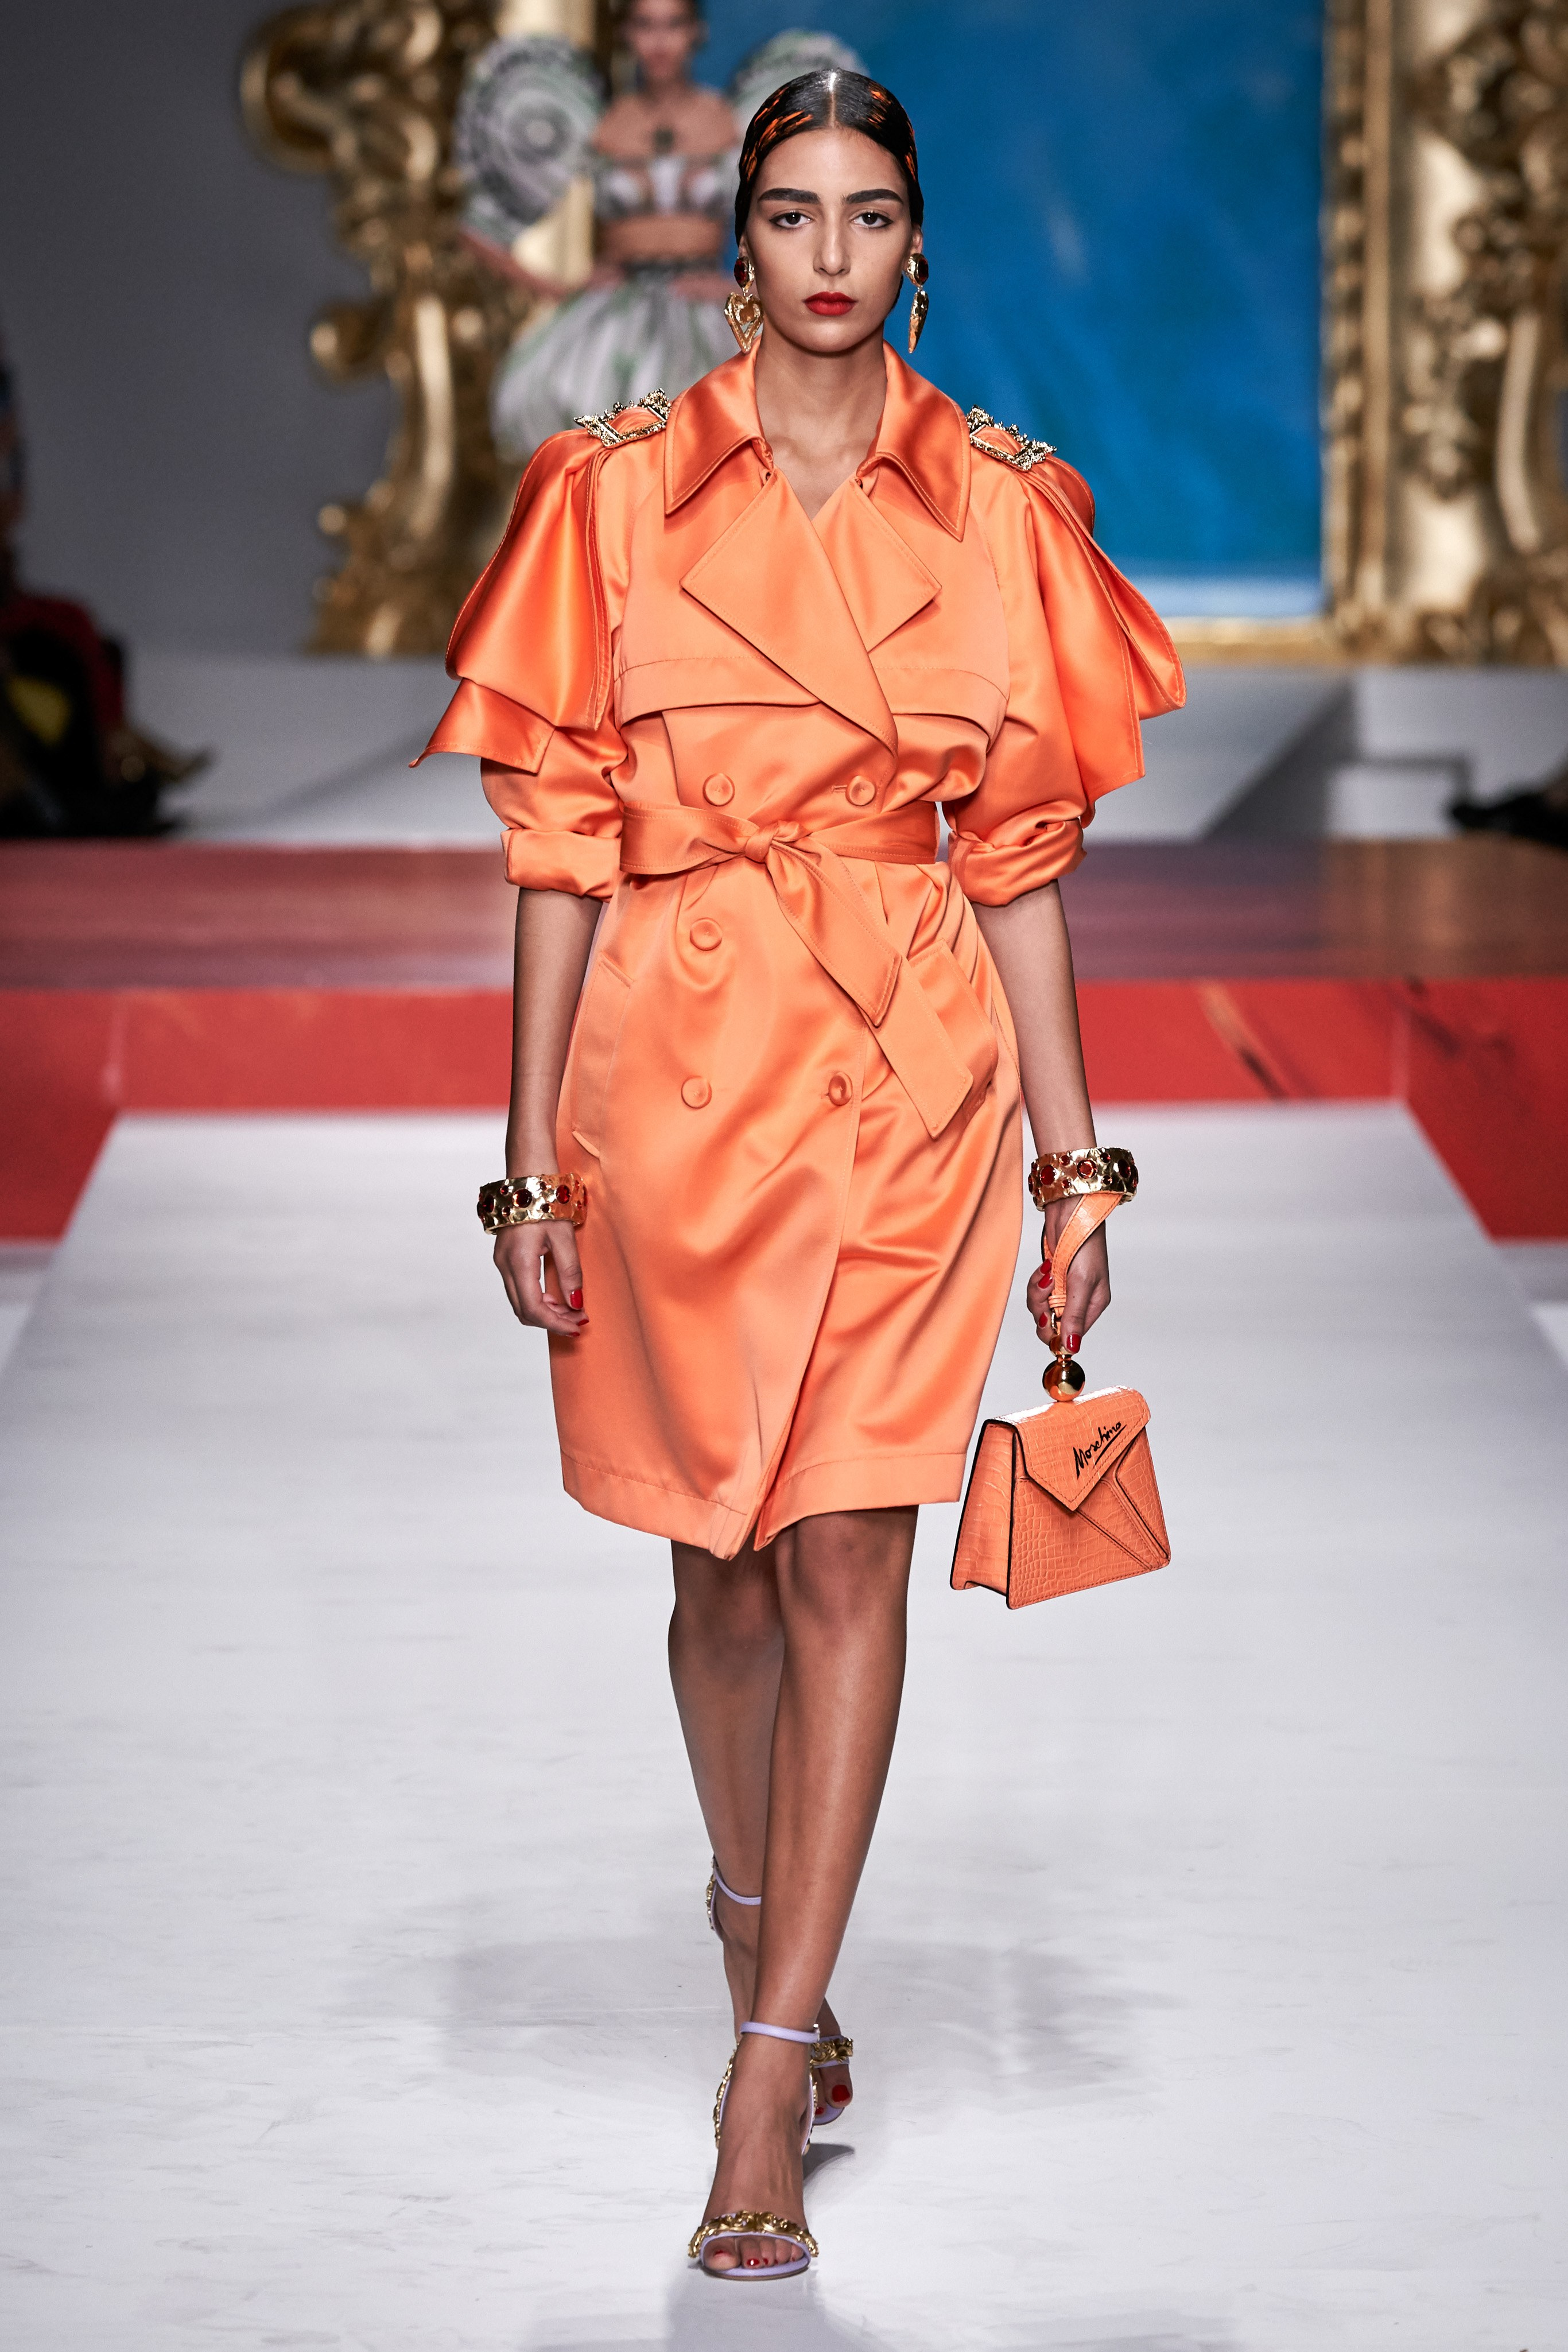 Moschino Spring Summer 2020 SS2020 trends runway coverage Ready To Wear VogueGivenchy Spring Summer 2020 SS2020 trends runway coverage Ready To Wear Vogue monochrome